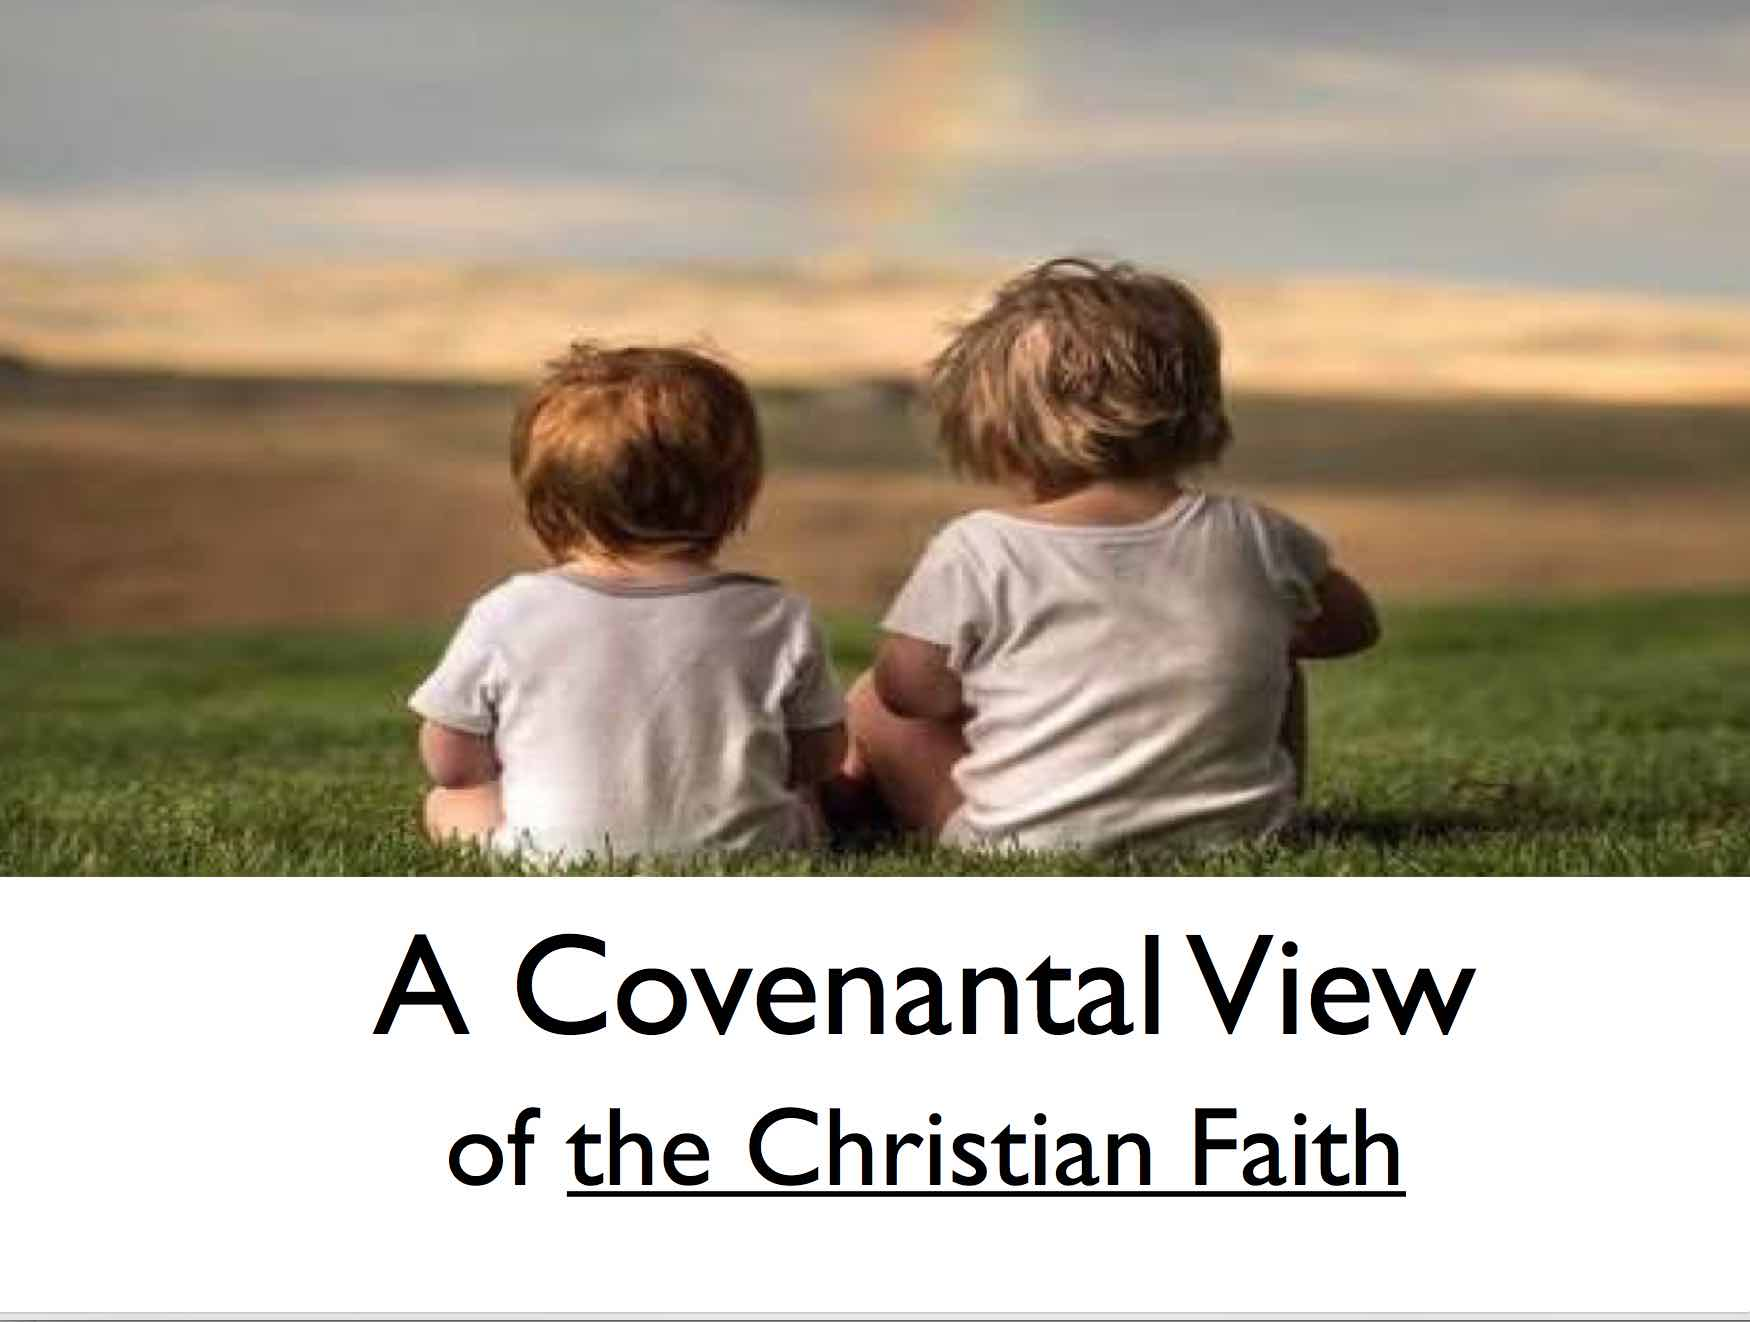 Gregg Strawbridge - A Covenantal View of the Christian Faith (4 mp3s)